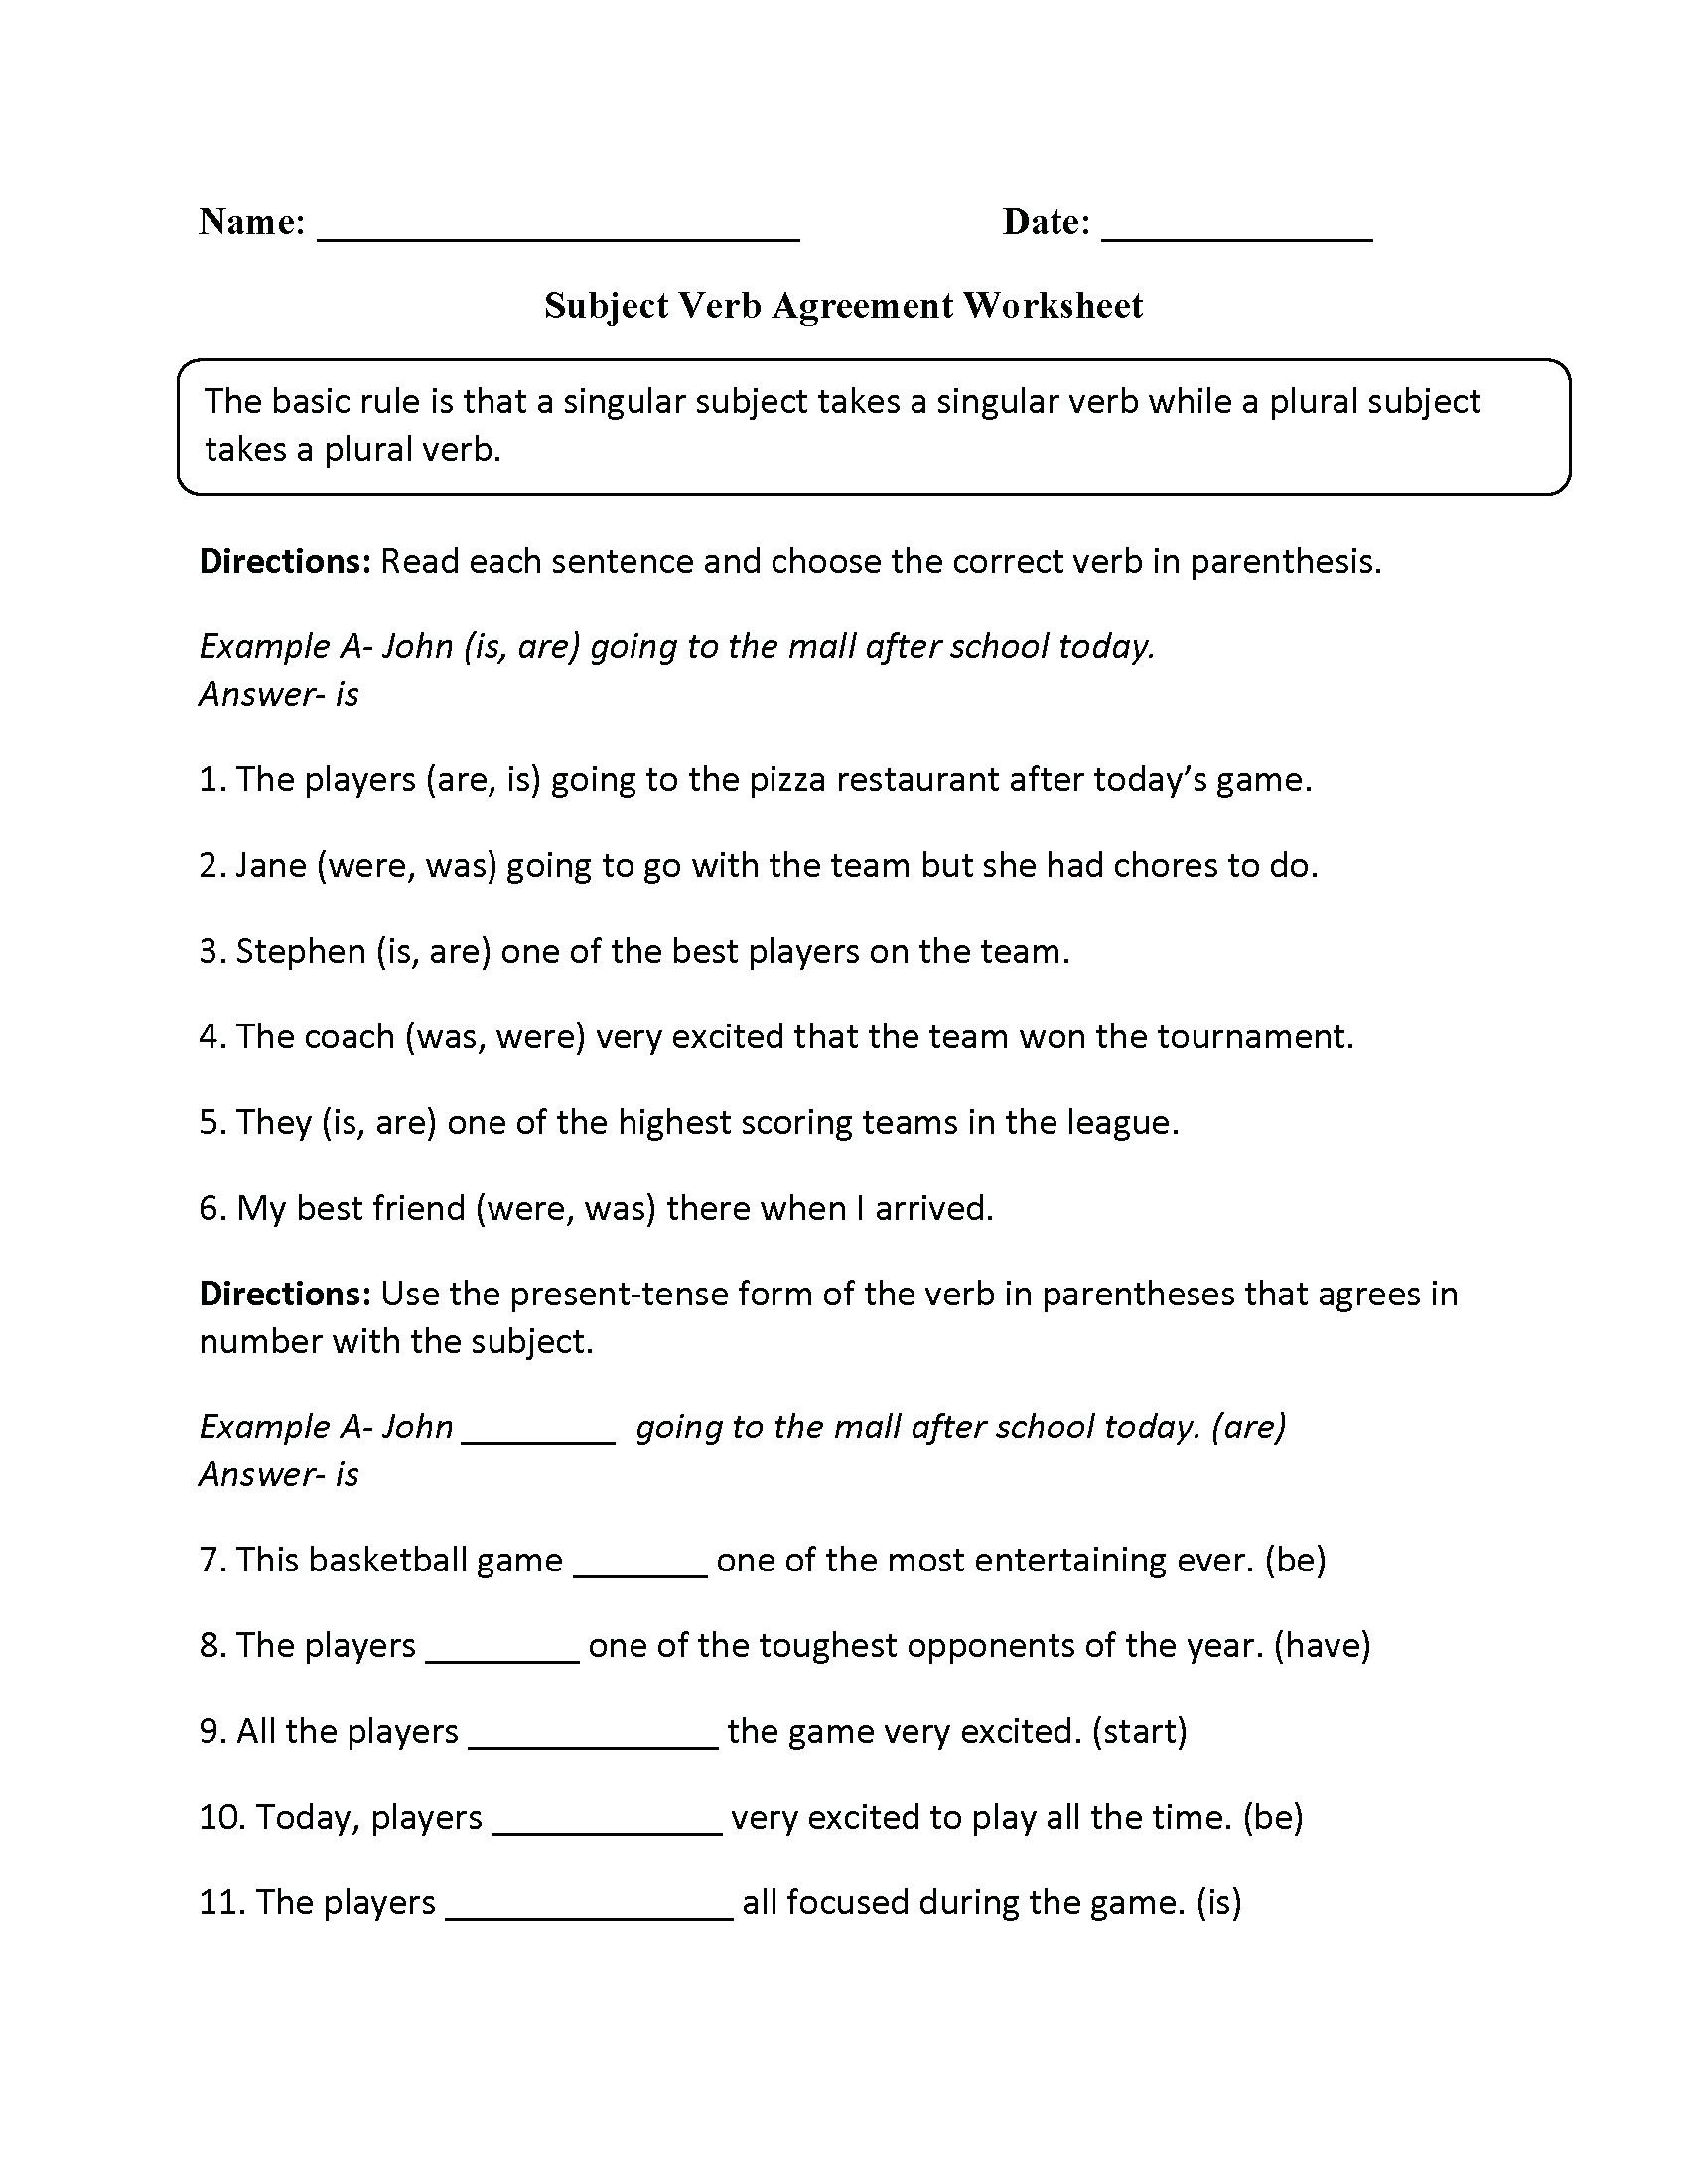 Grammar Worksheets for Grade 5 Monthly Archives June 2020 English Reading Prehension